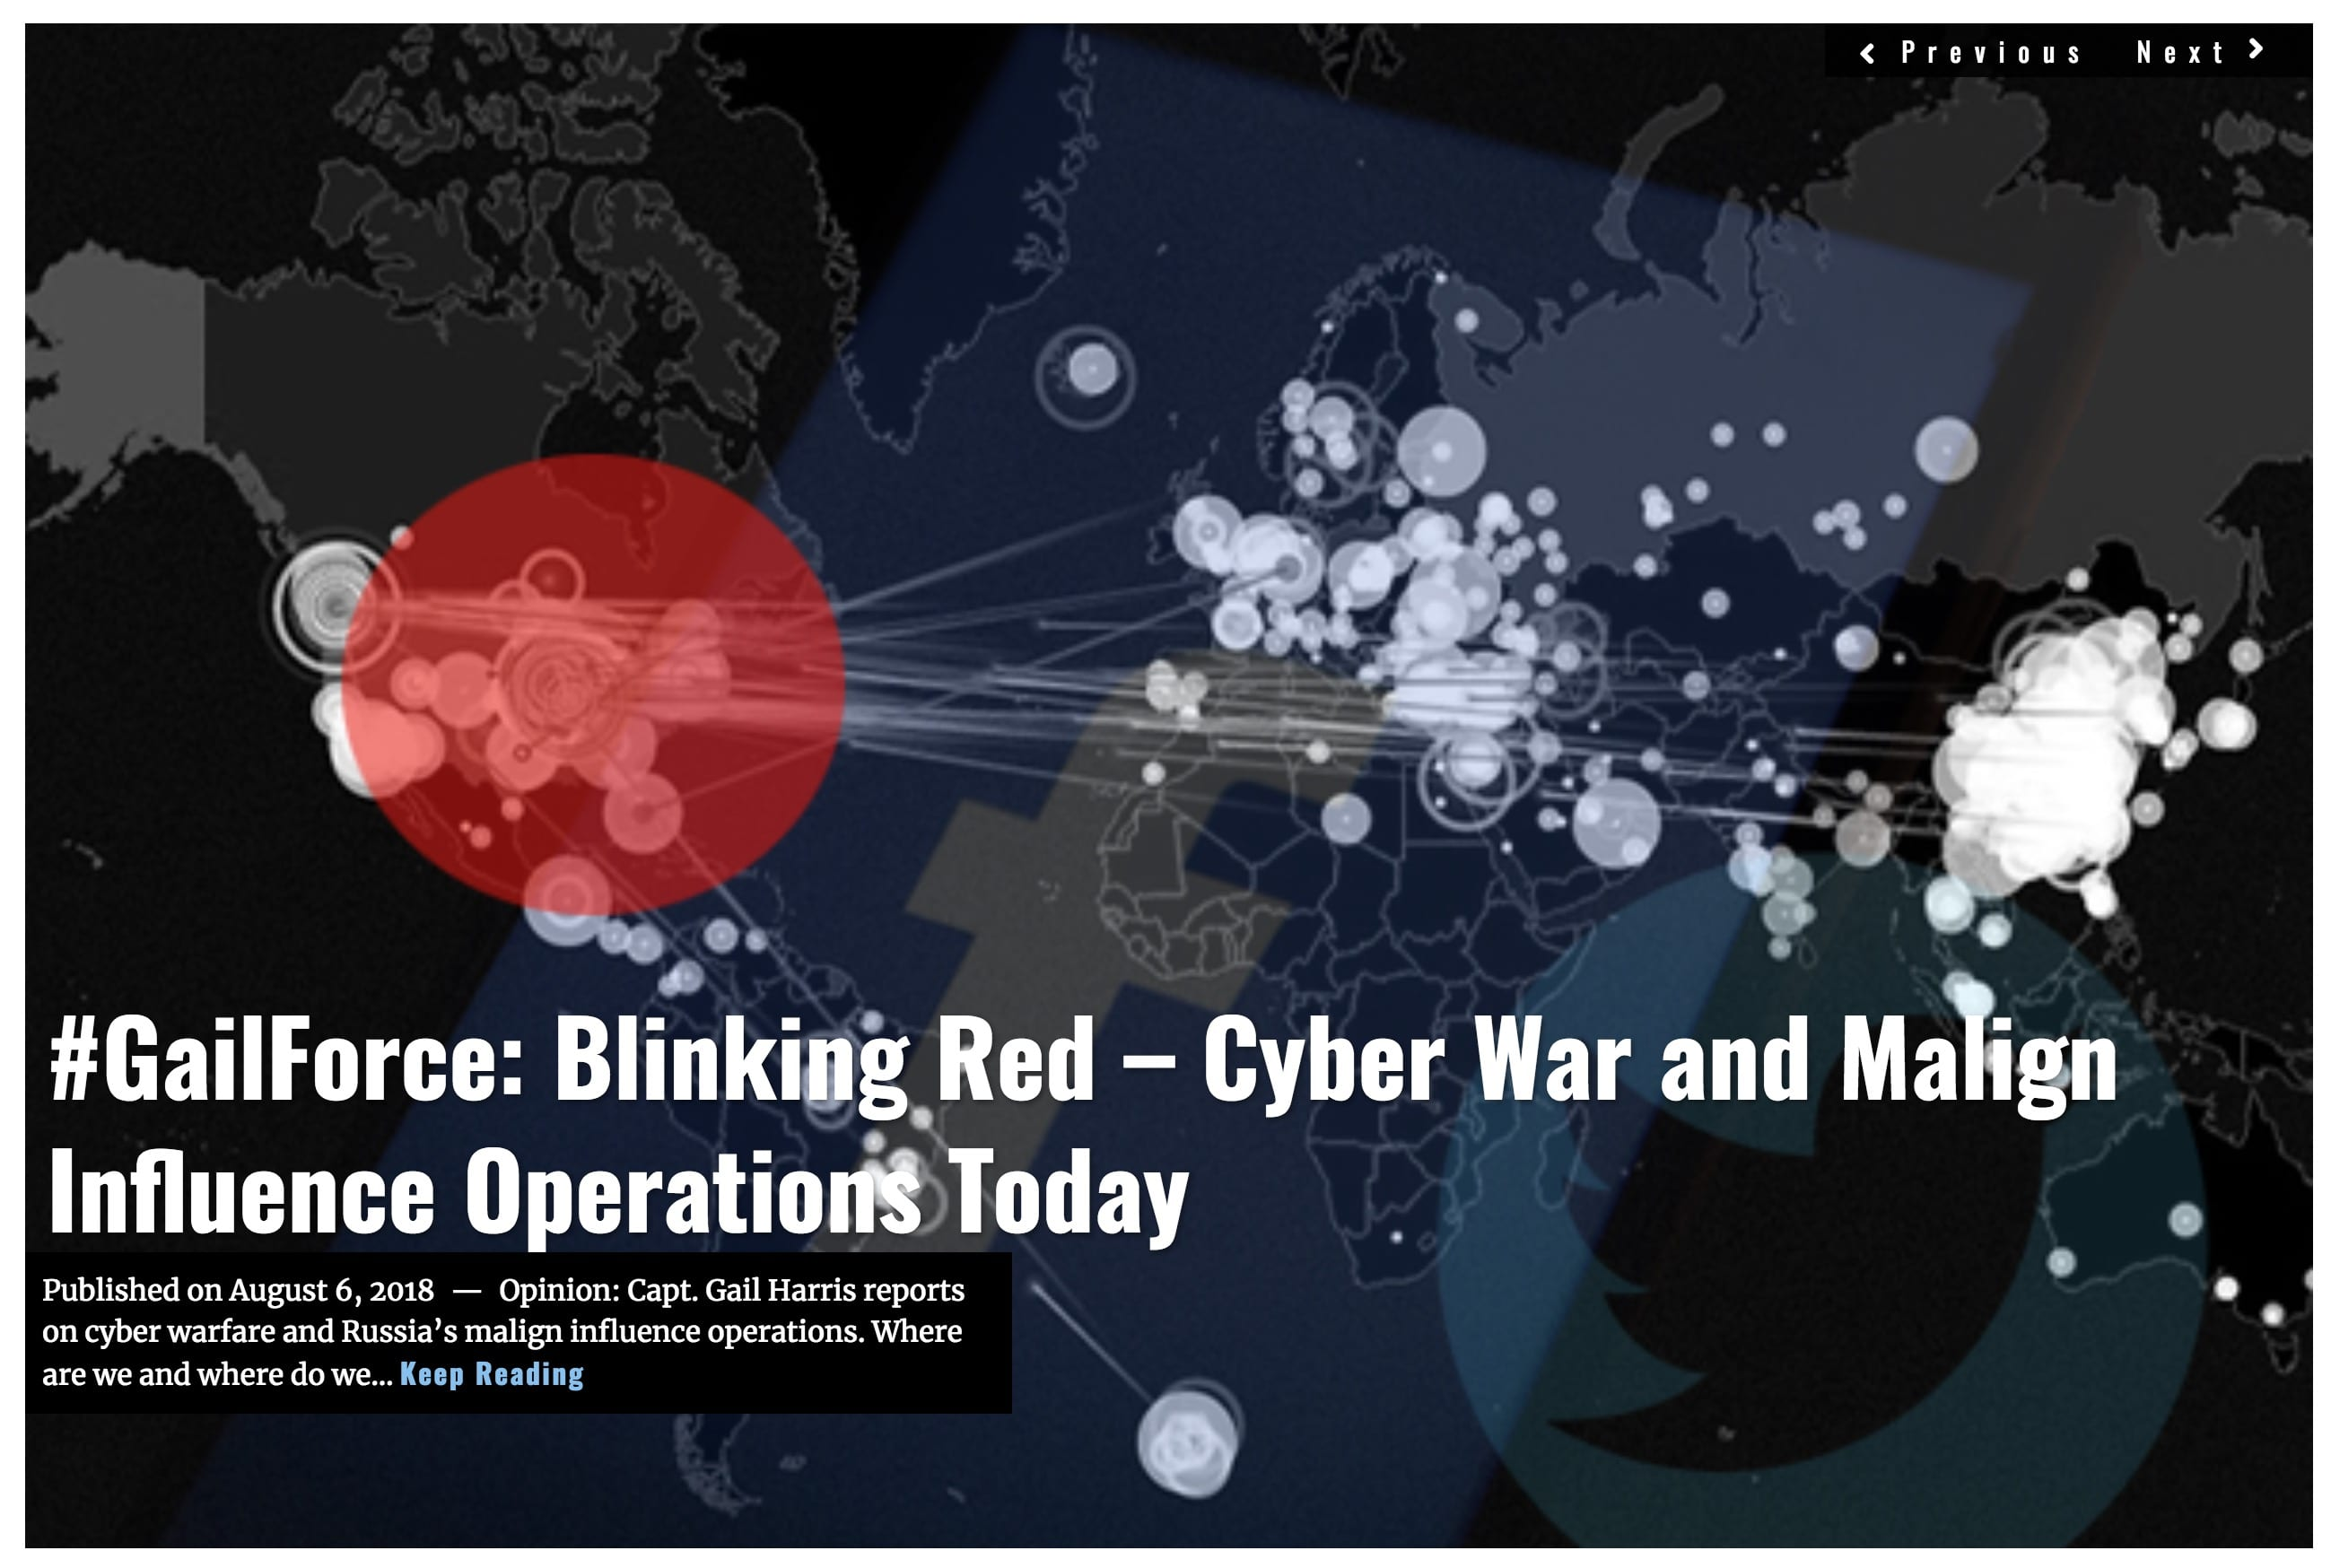 Image Lima Charlie News Headine GailForce Blinking Red - Cyber War and Malign Influence Operations Today AUG 6 2018